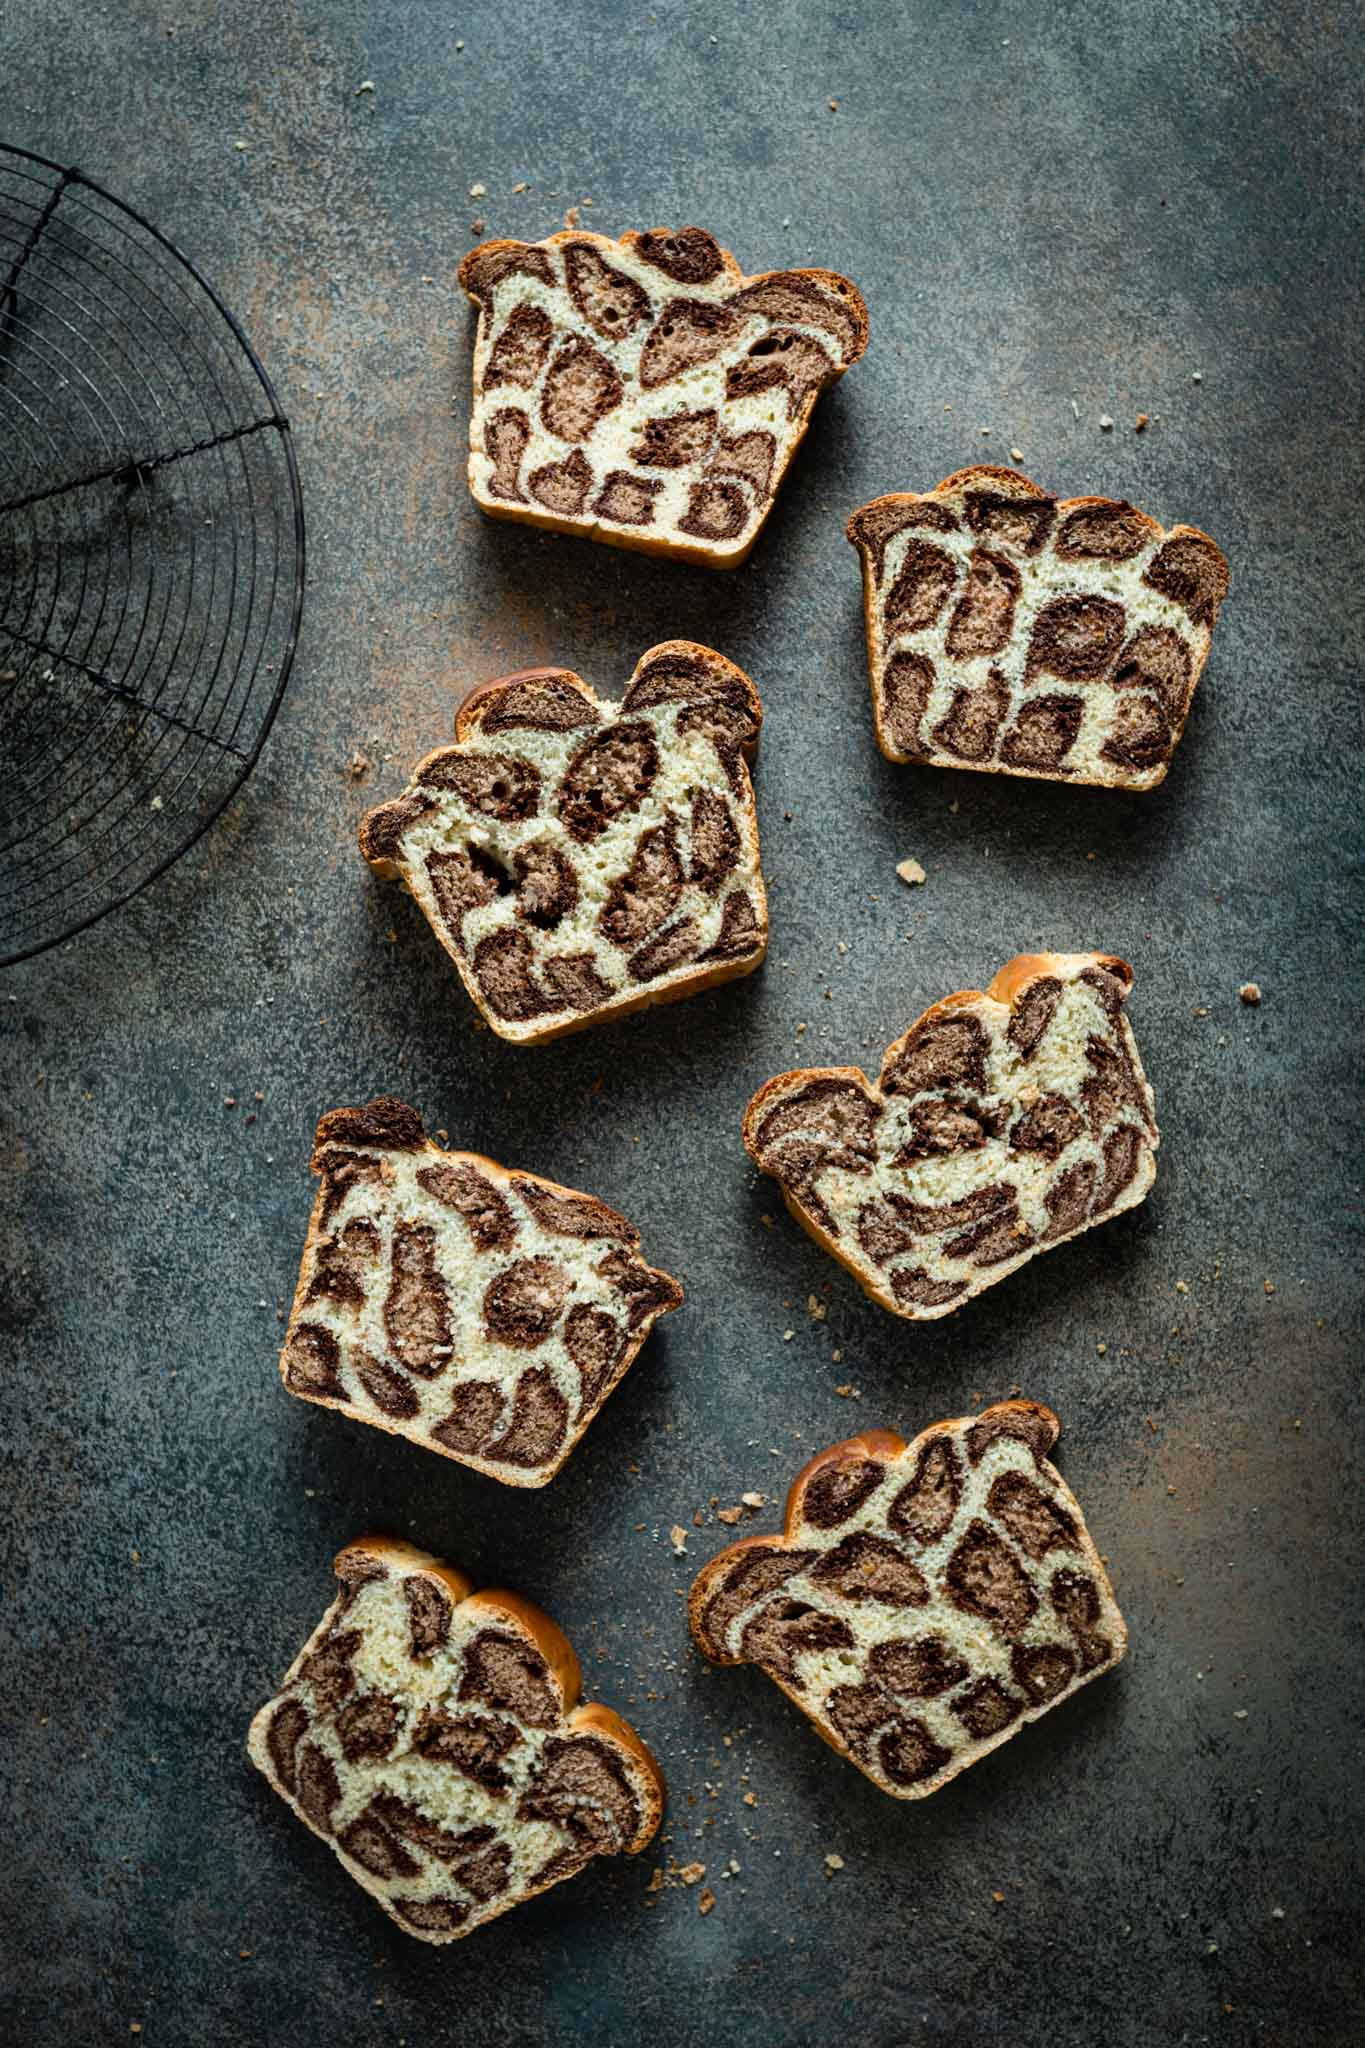 Slices of homemade leopard milk bread